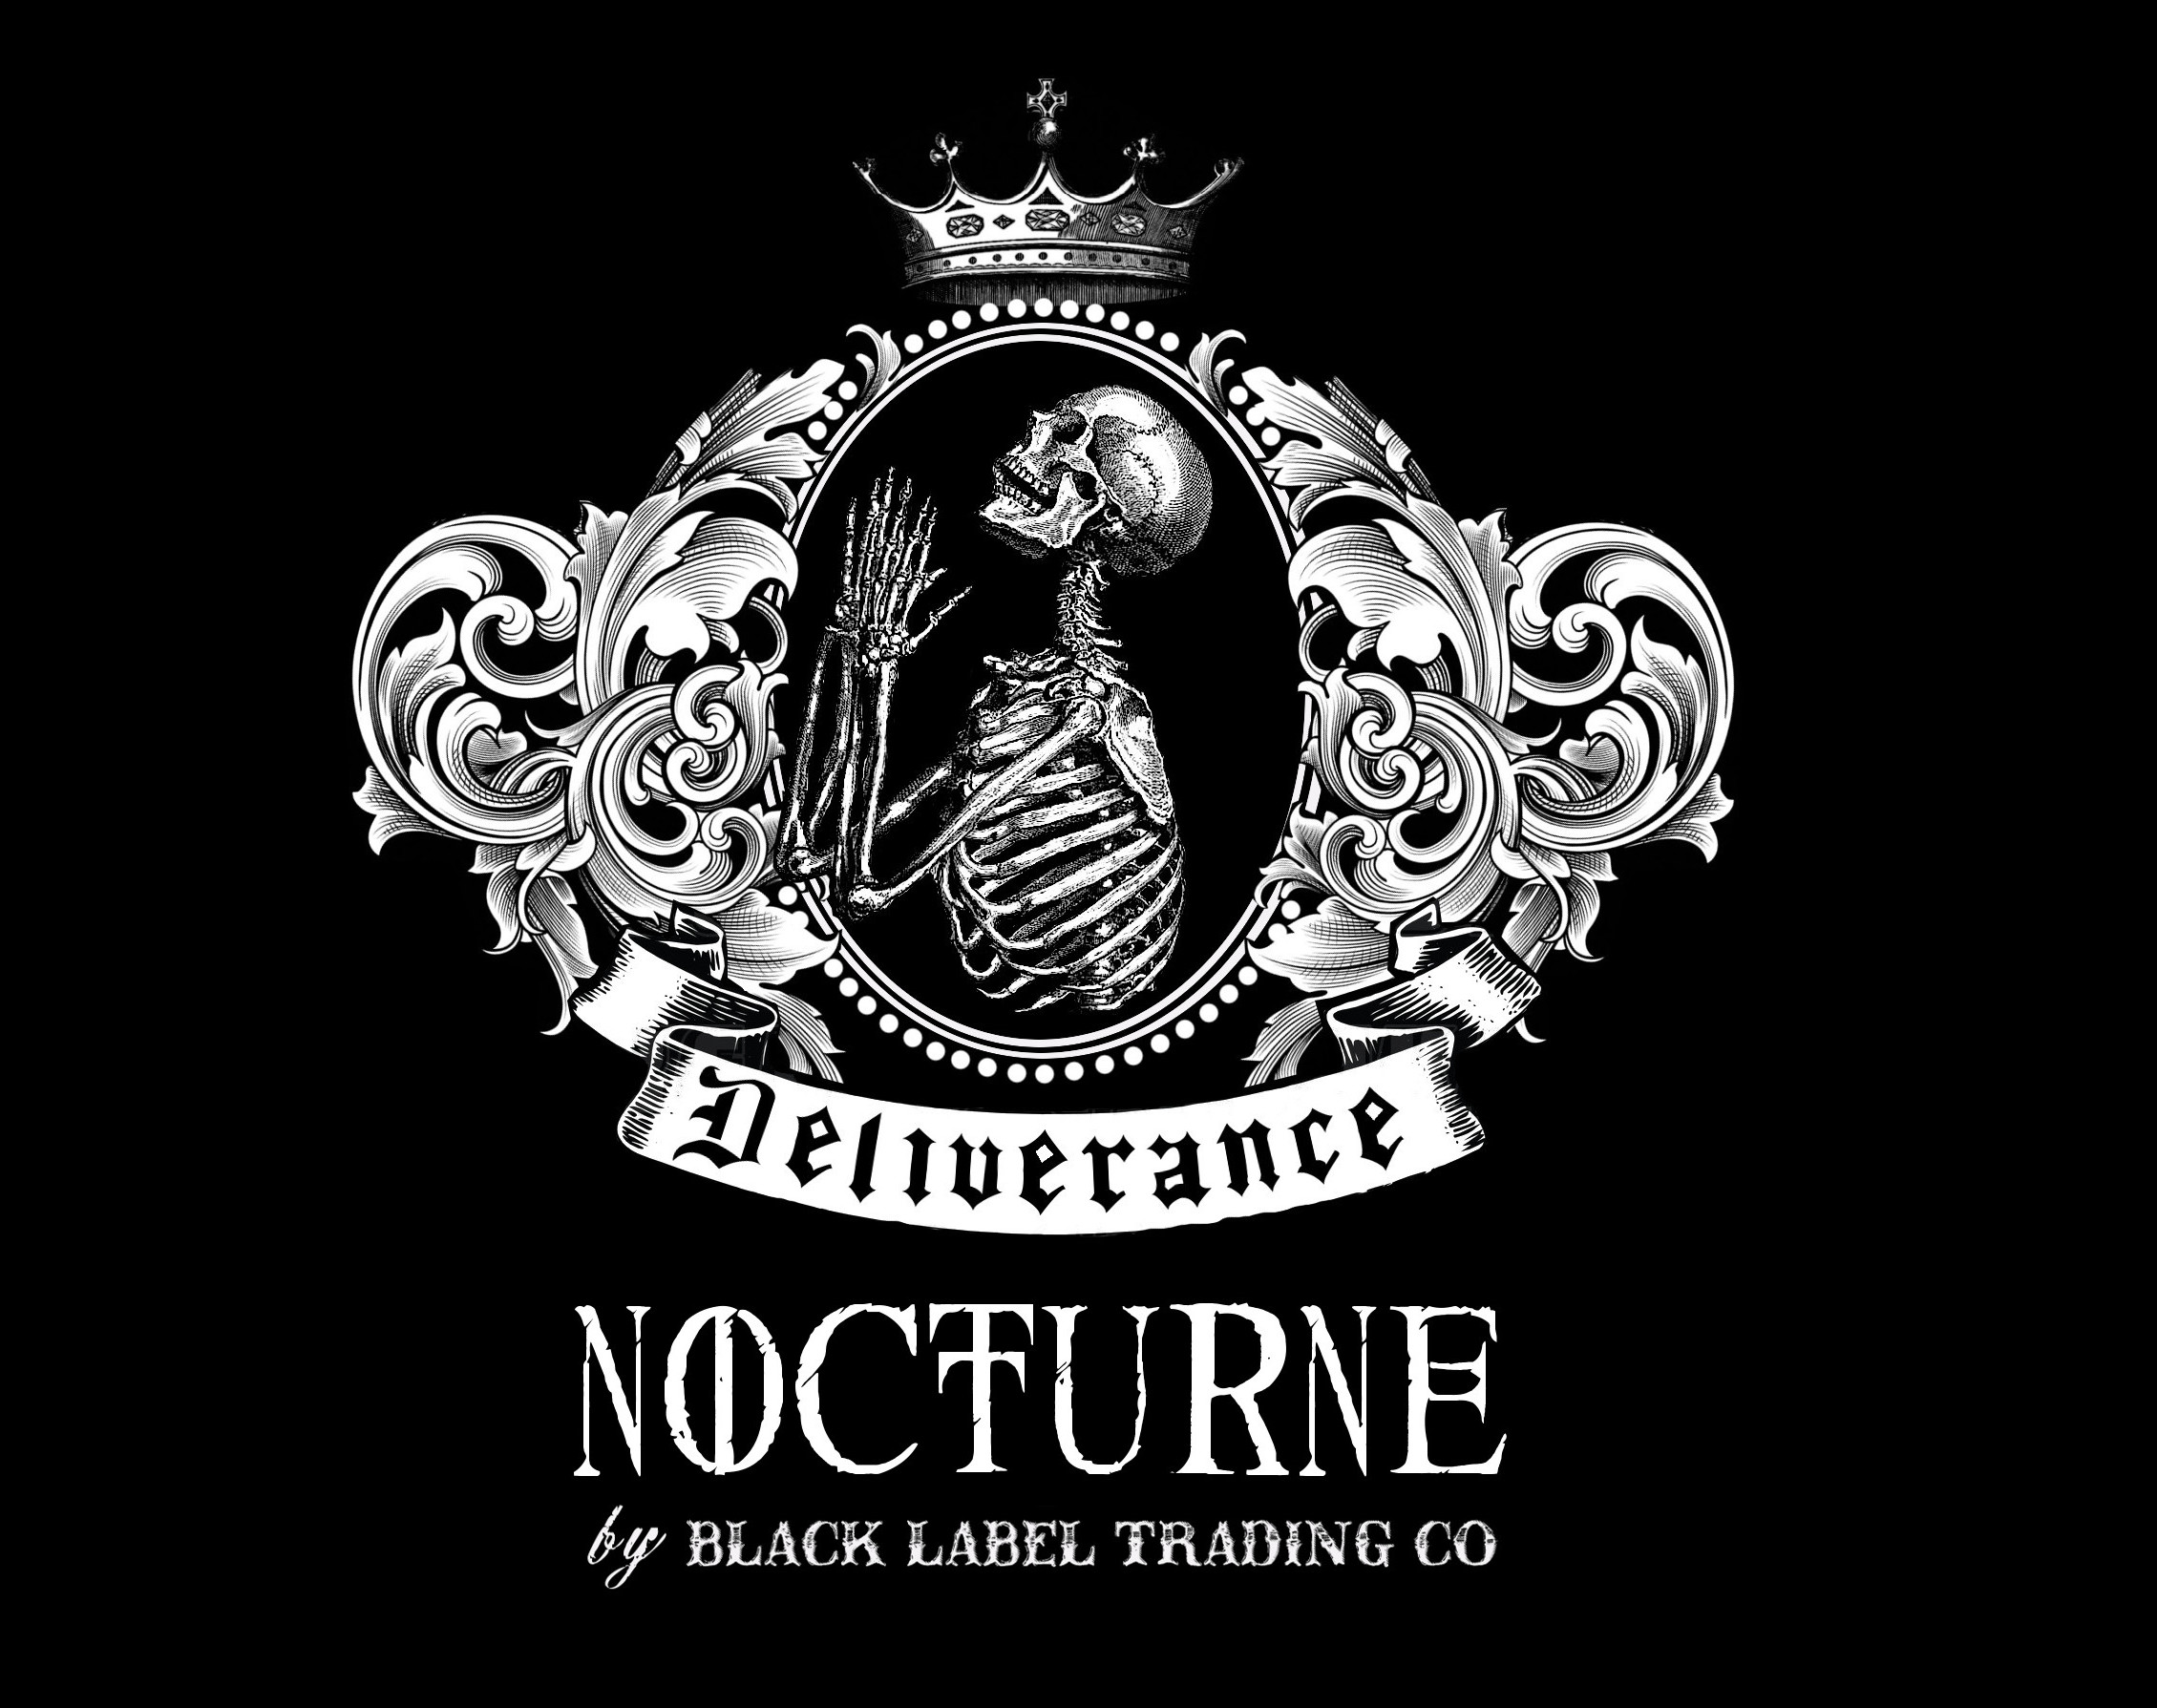 Cigar News: Black Label Trading Company to Release Deliverance Nocturne 2017